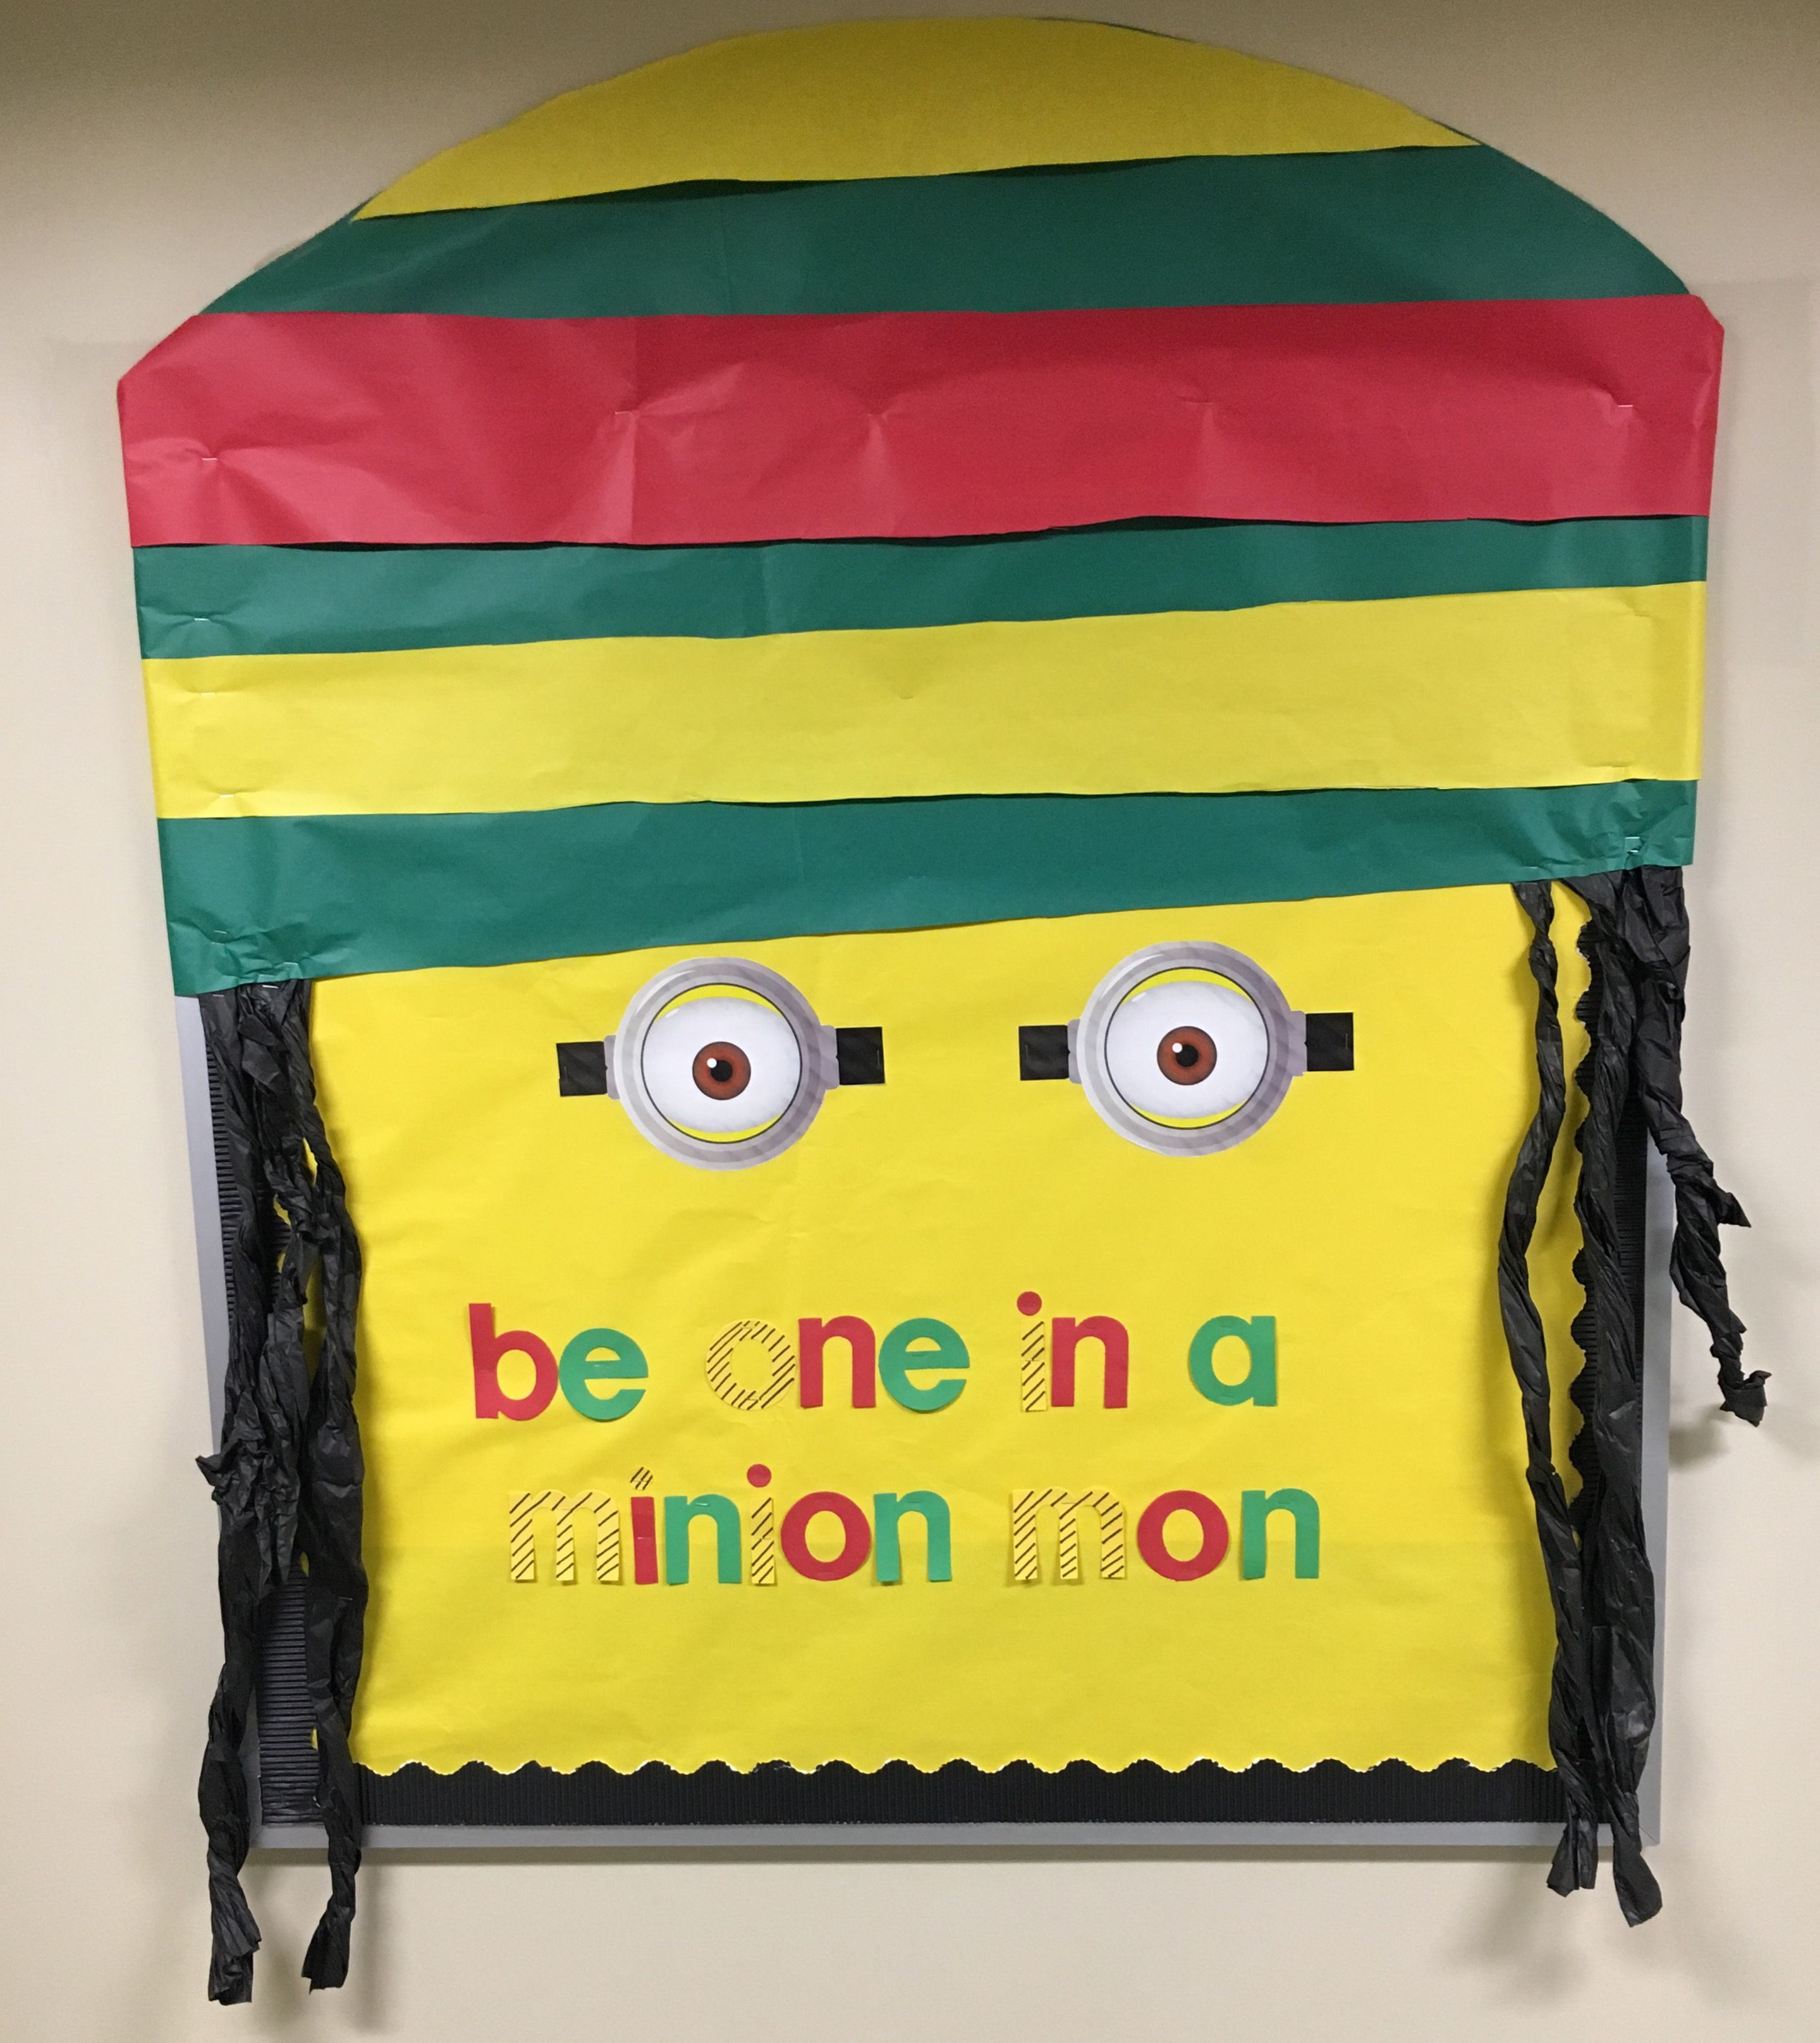 Bulletin board diversity jamaican minion with the saying